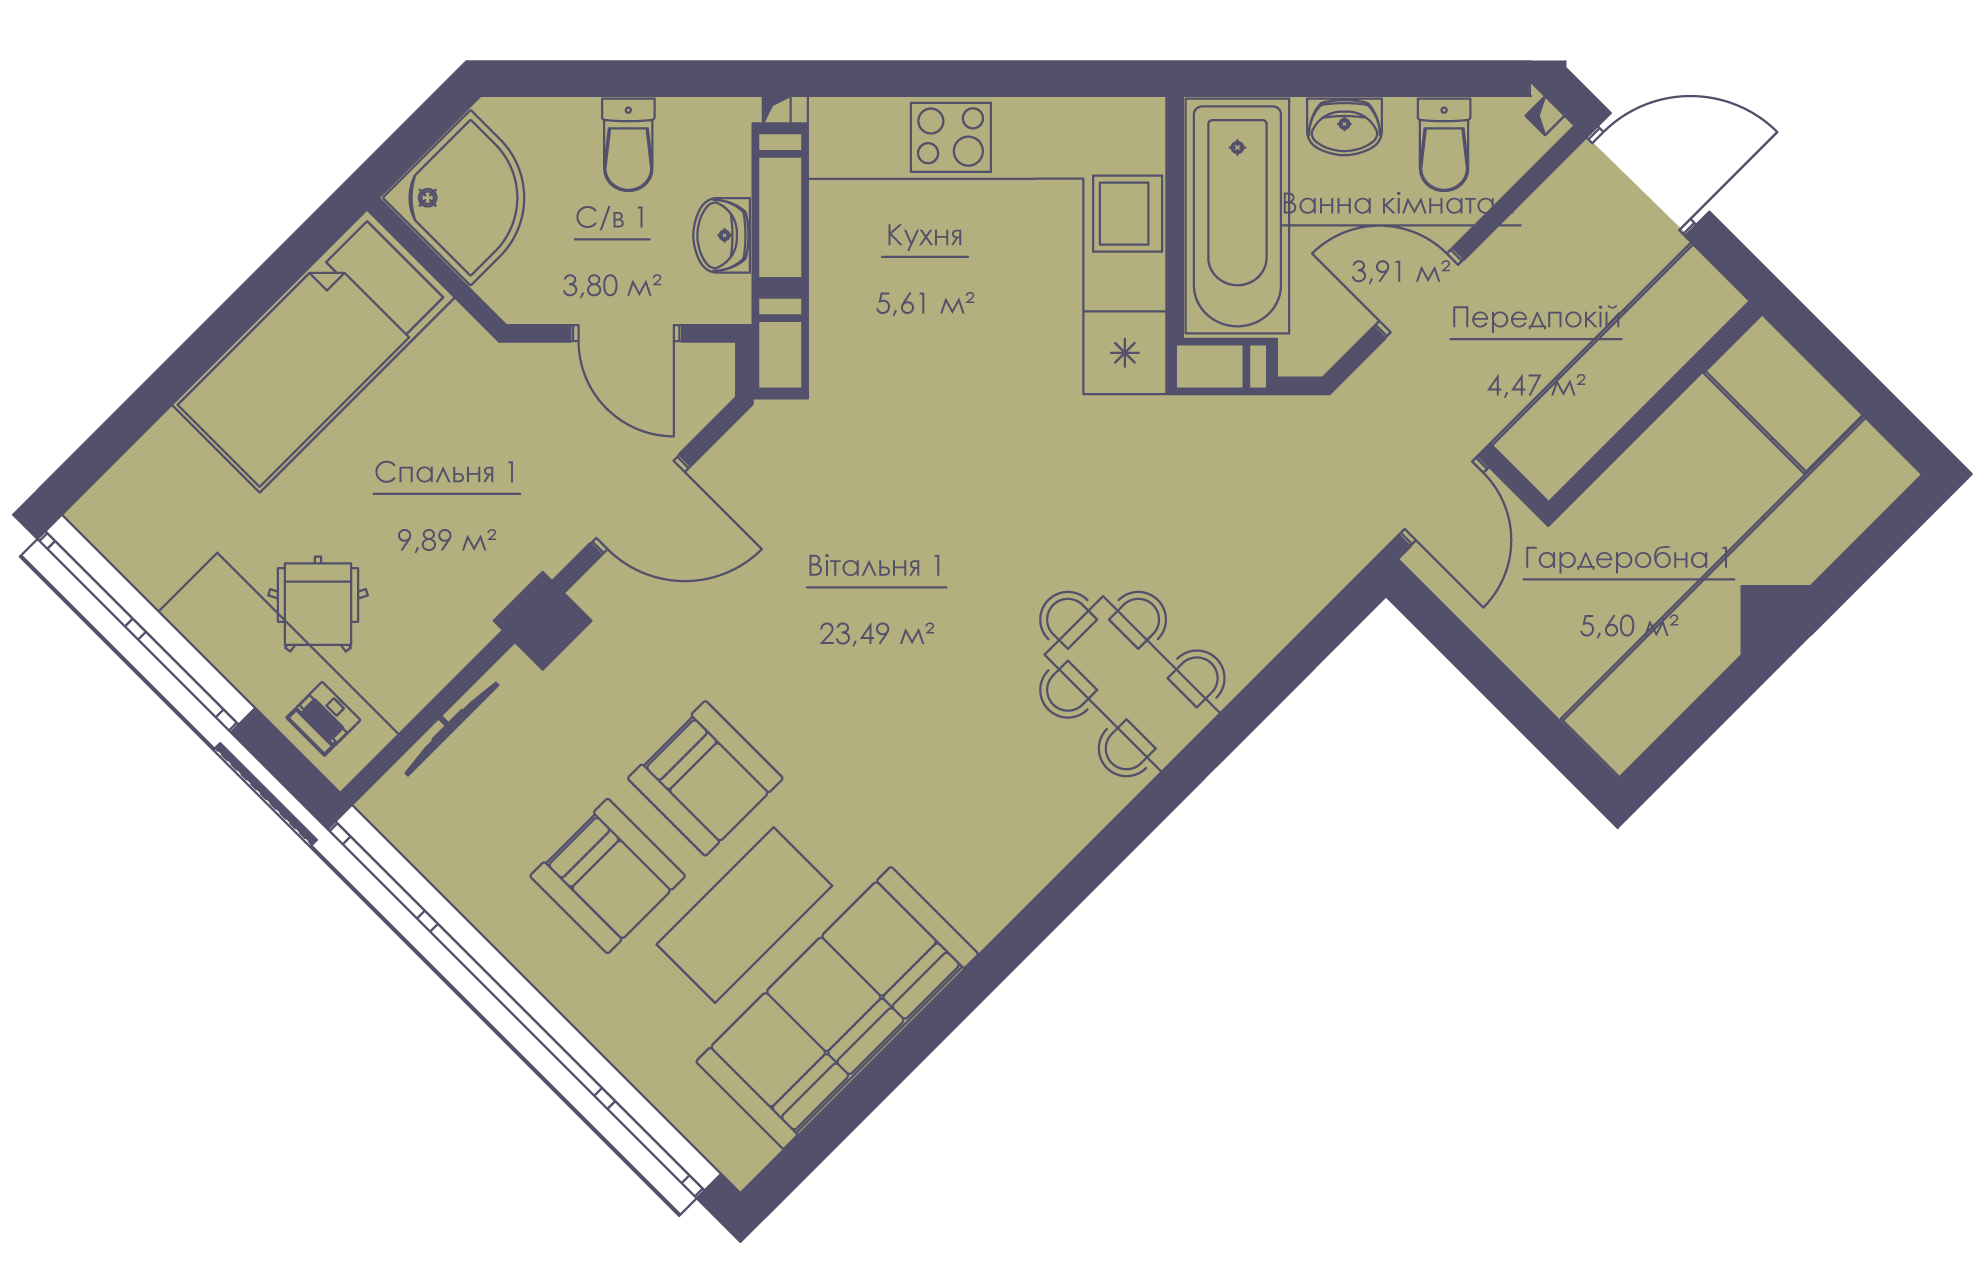 Apartment layout KV_72_2b_1_1_4-1